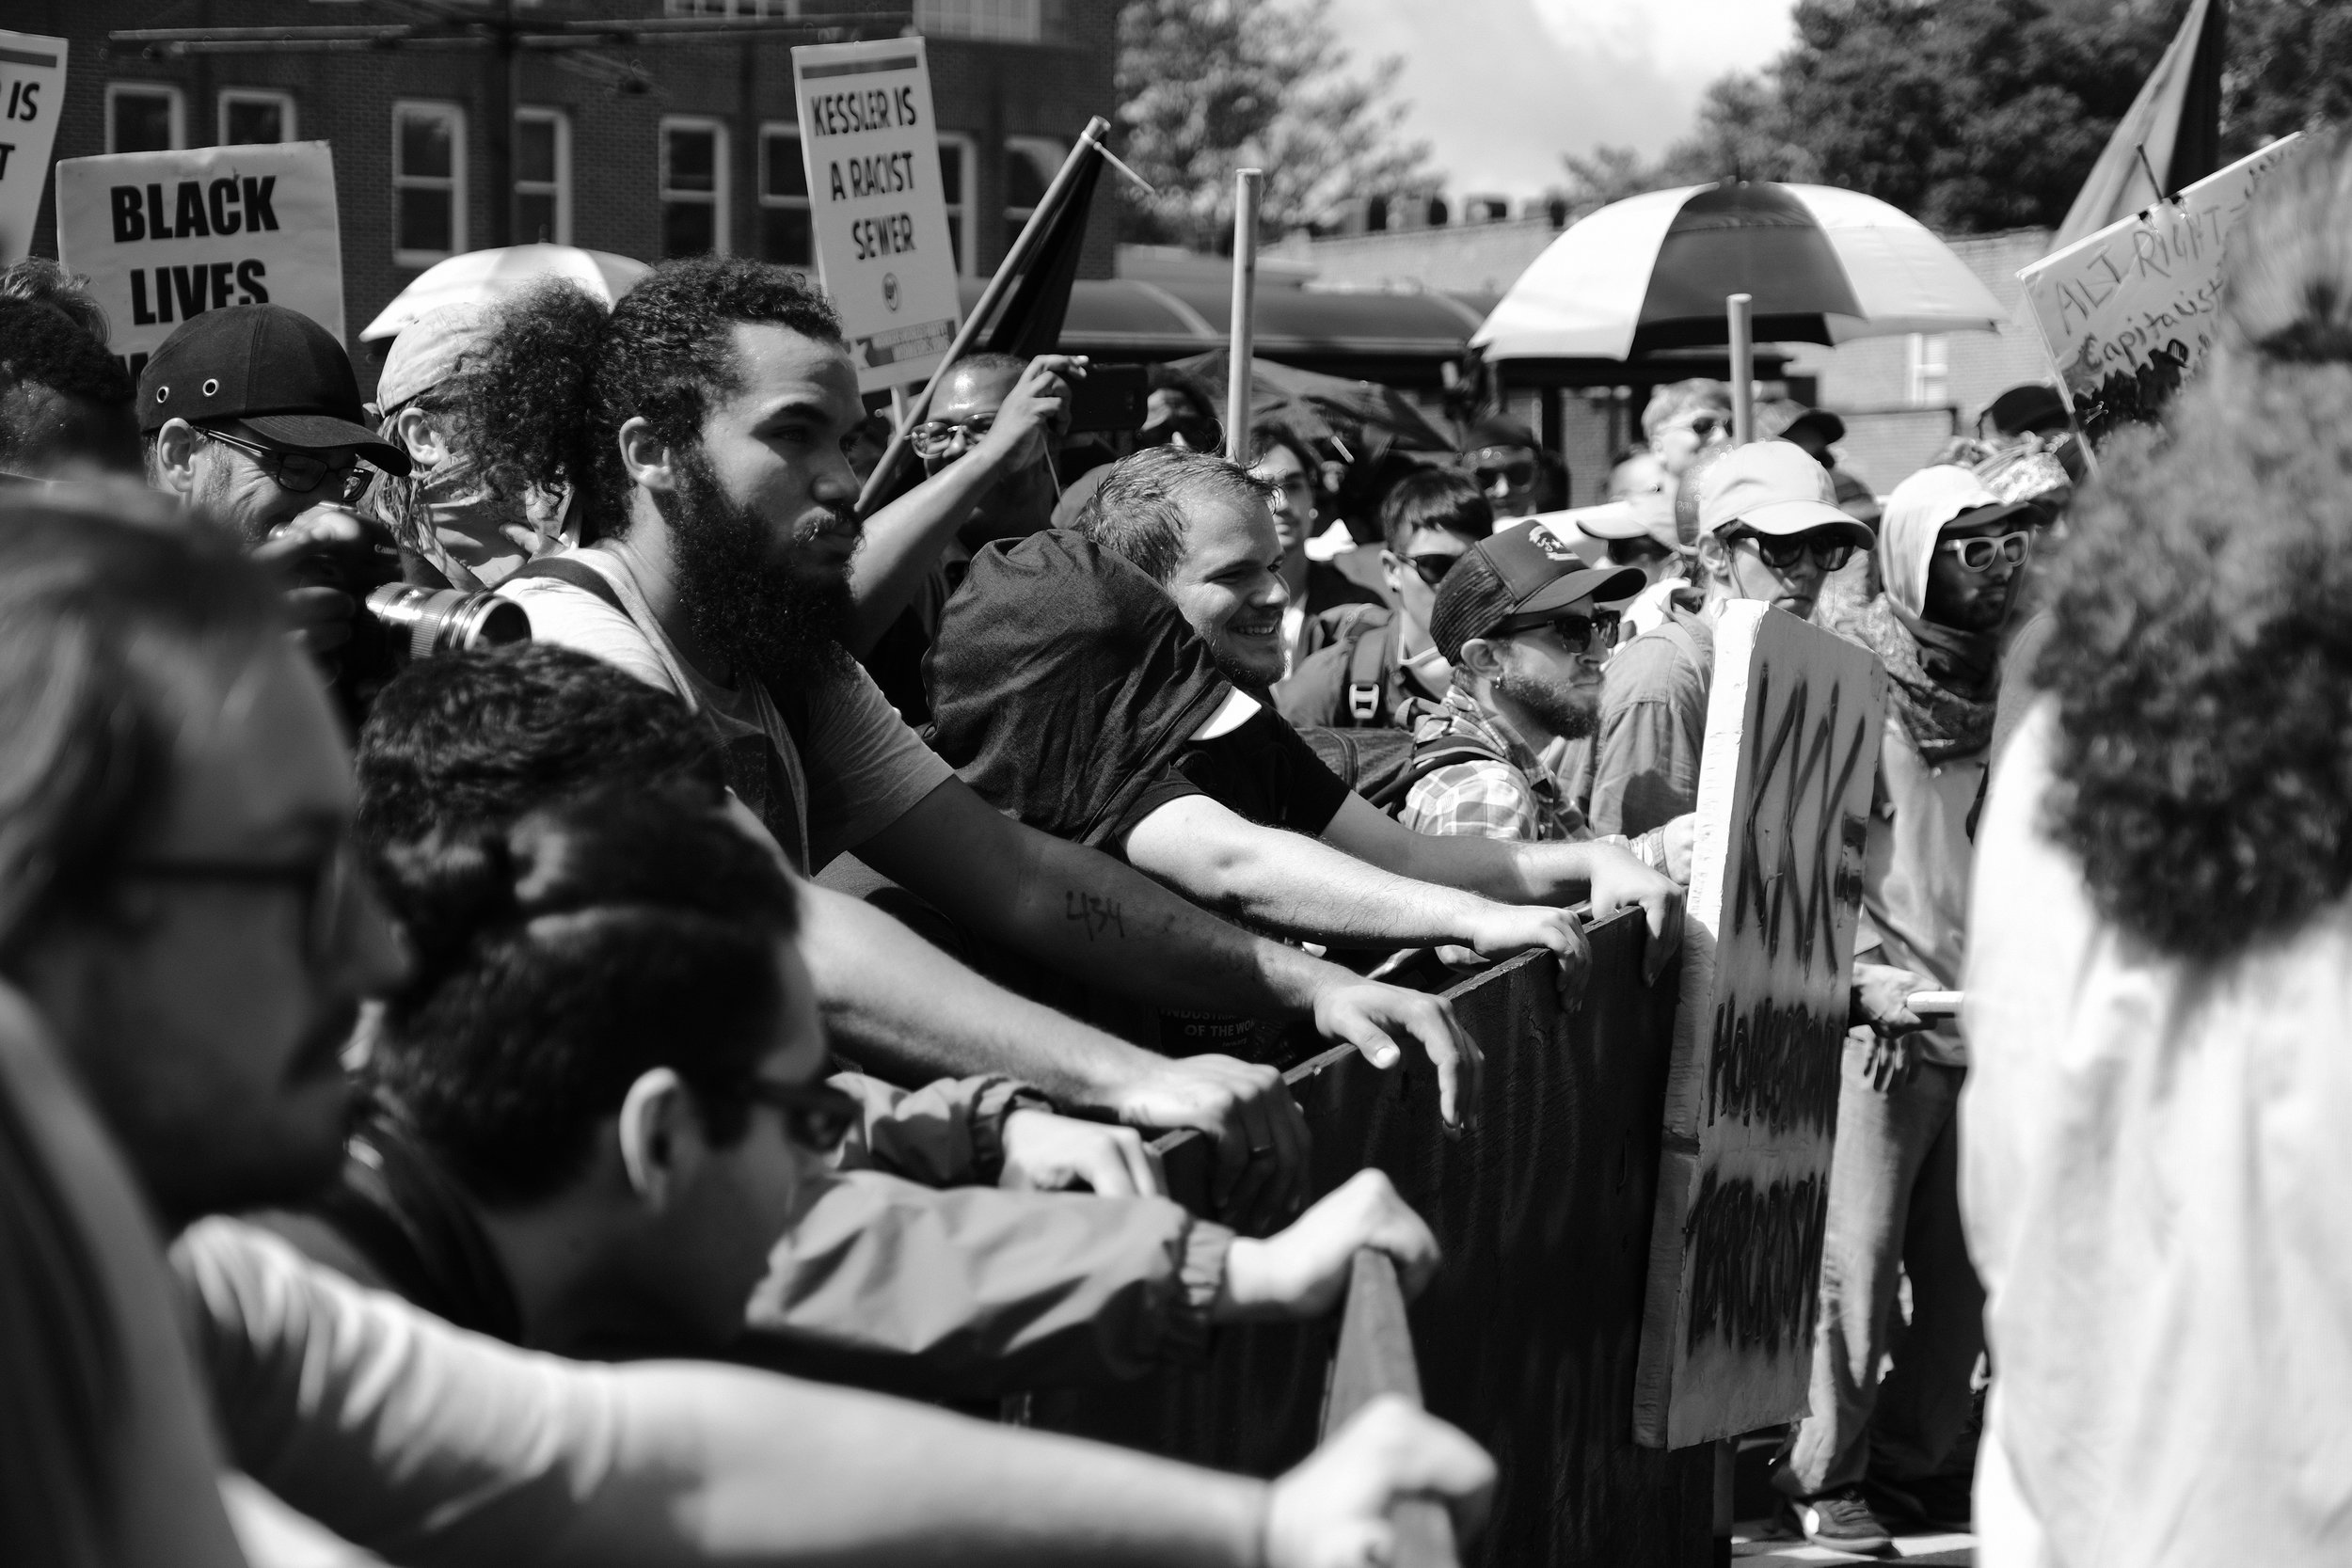 Throughout the morning, small conflicts erupted in the street in front of Emancipation Park. Protesters held hard banners in groups to defend against thrown projectiles and white supremacists who started pushing out of the permitted area and into the street. The Unite the Right attendees preferred personal shields advertizing their affiliations which are often considered prized possessions.